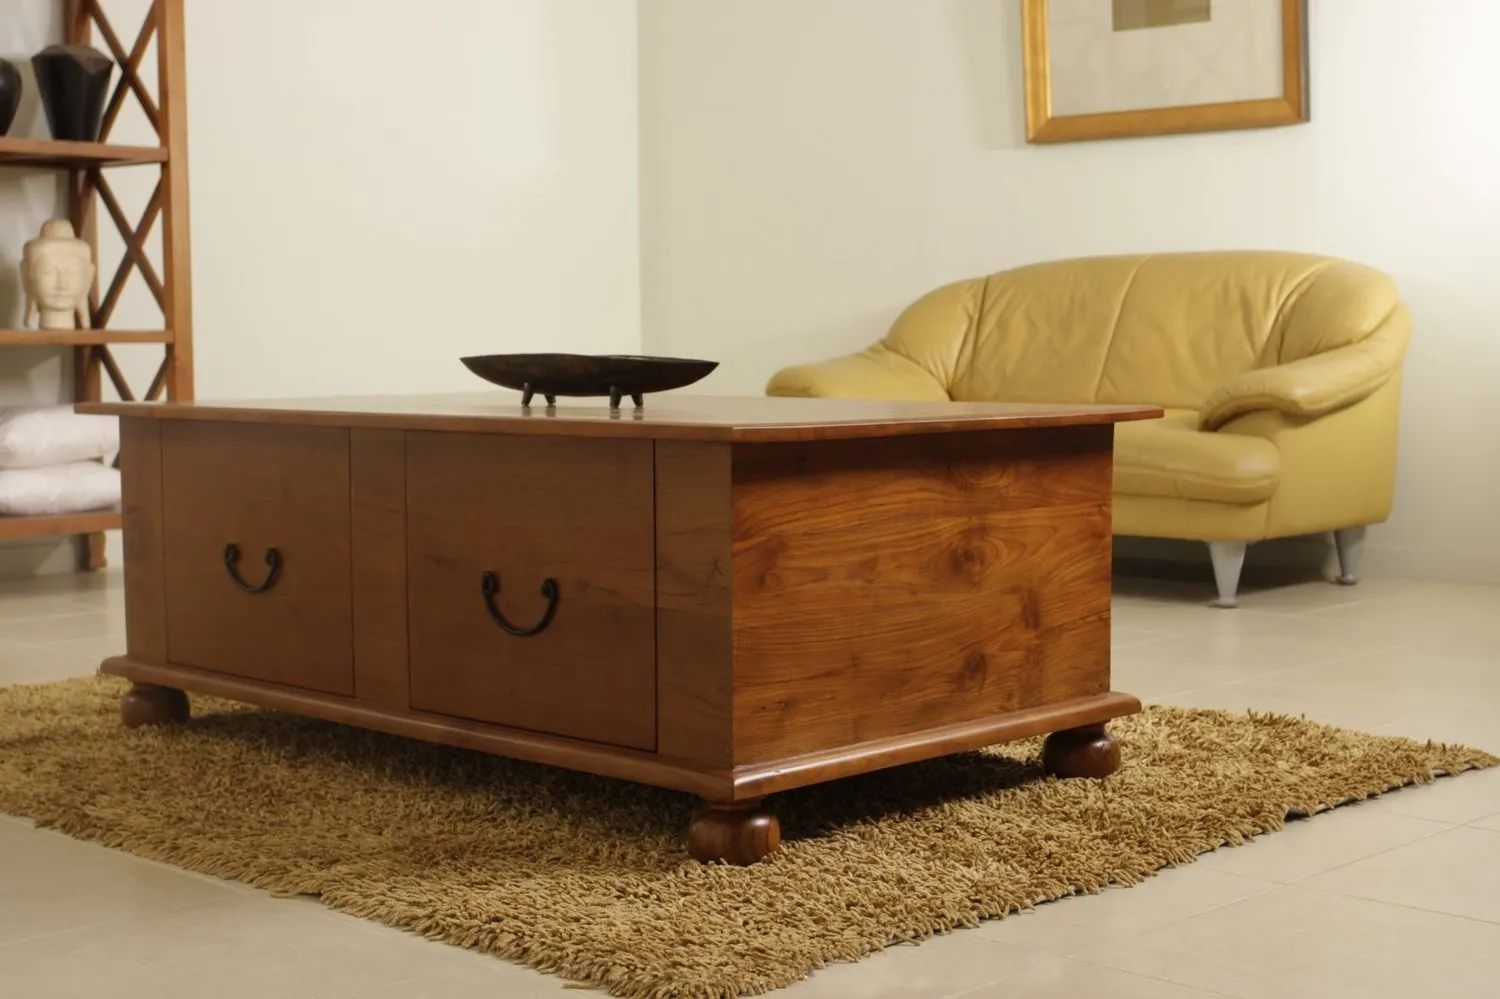 Dovetailed 2 drawers bracket pulls on the front side of Bun feet coffee table